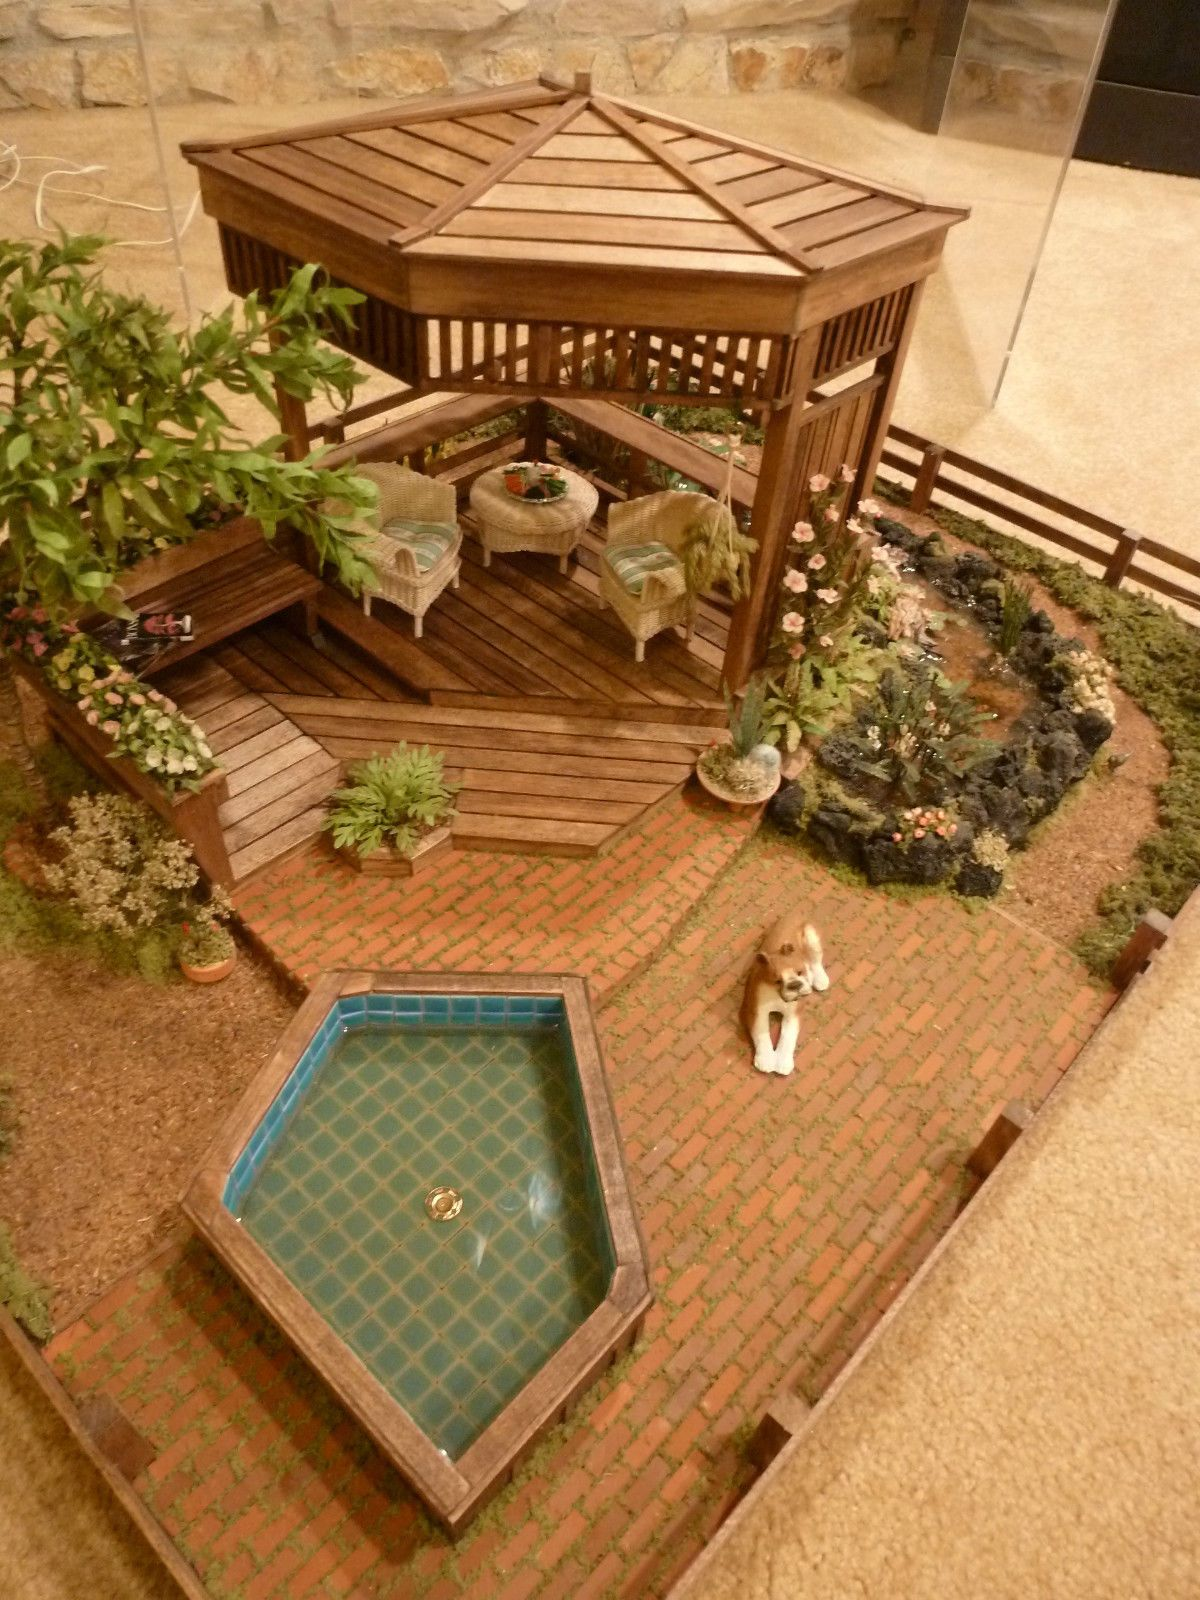 beautiful miniature garden display gazebo jacuzzi flowers trees wicker set miniature. Black Bedroom Furniture Sets. Home Design Ideas